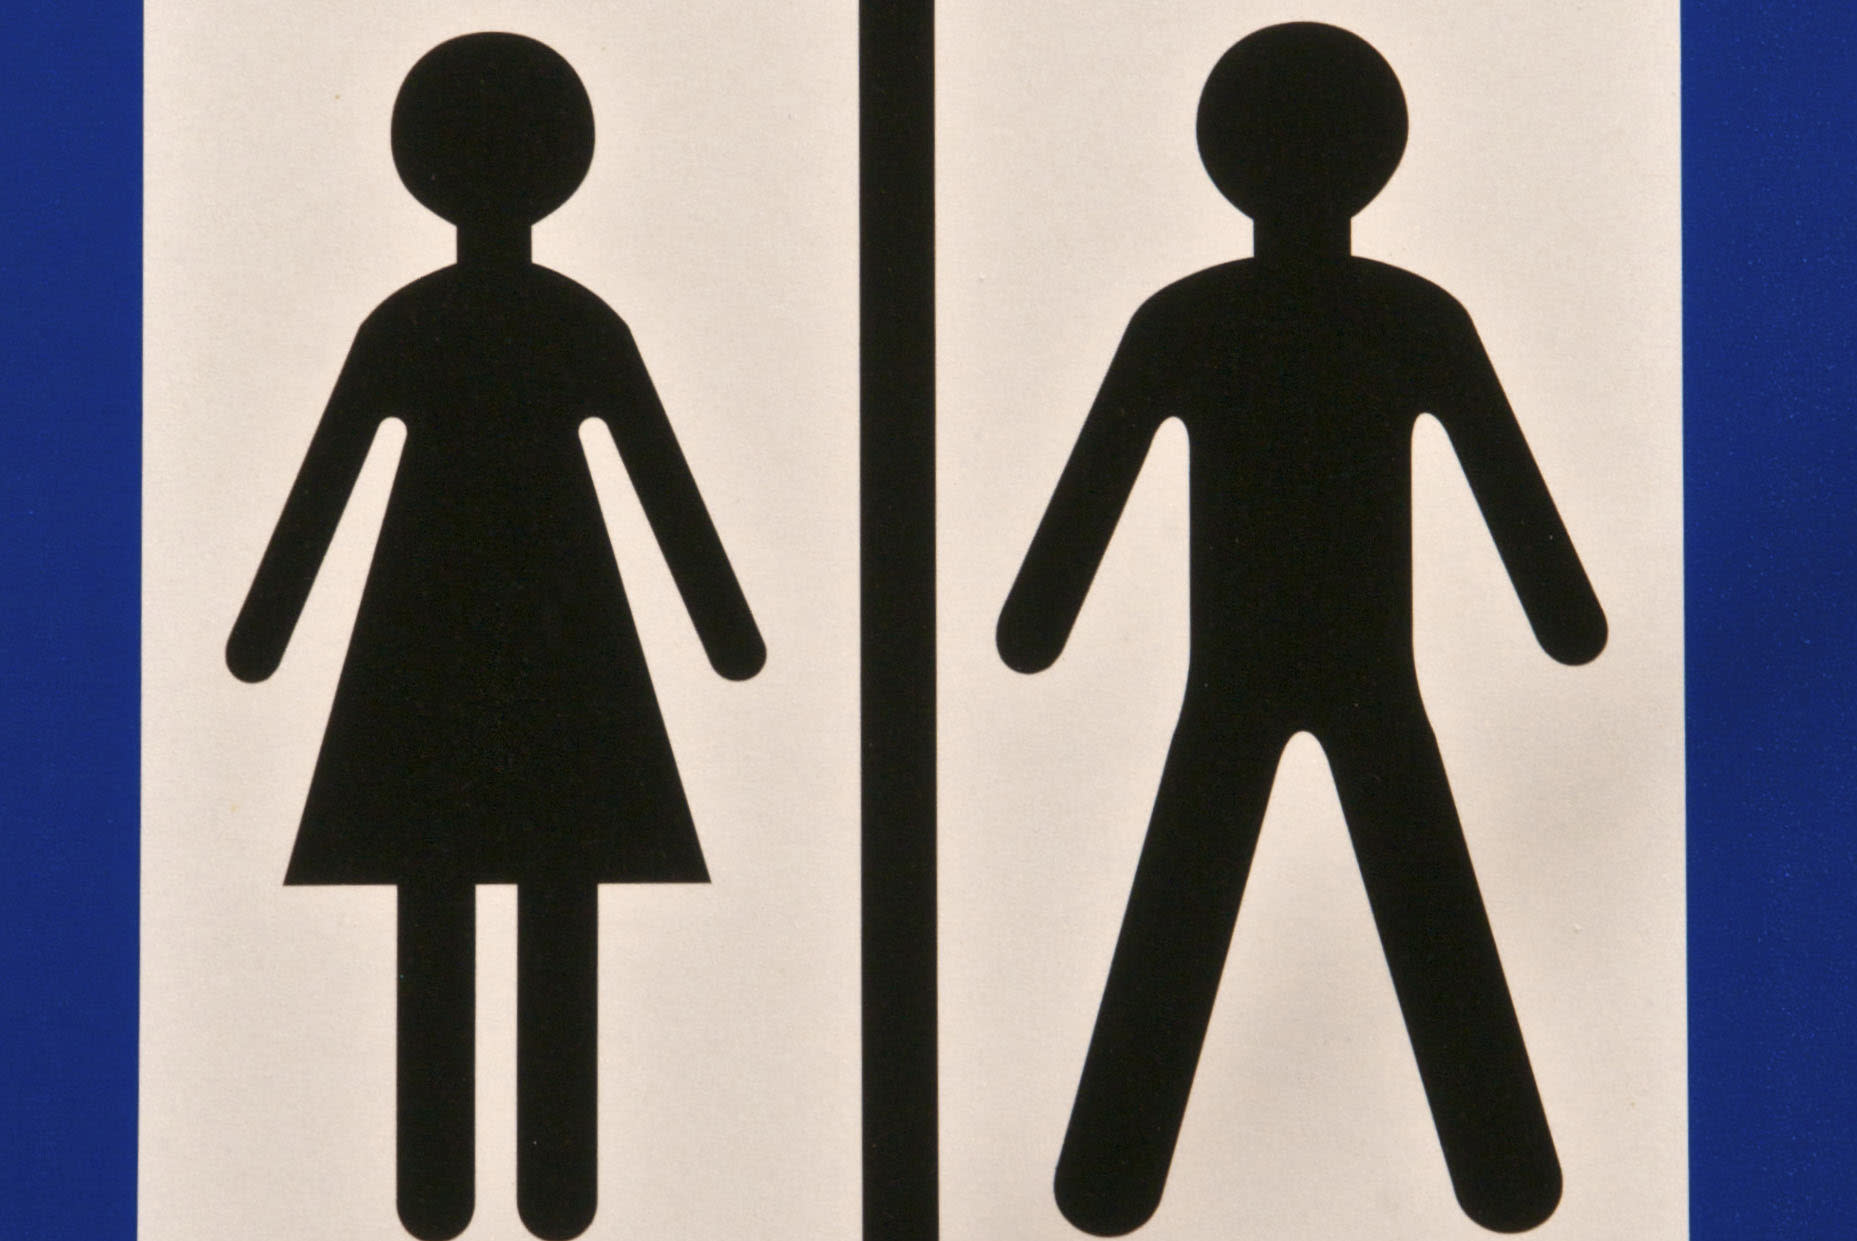 'It Was Never a Dress' Ingeniously Updates Women's Room Symbol